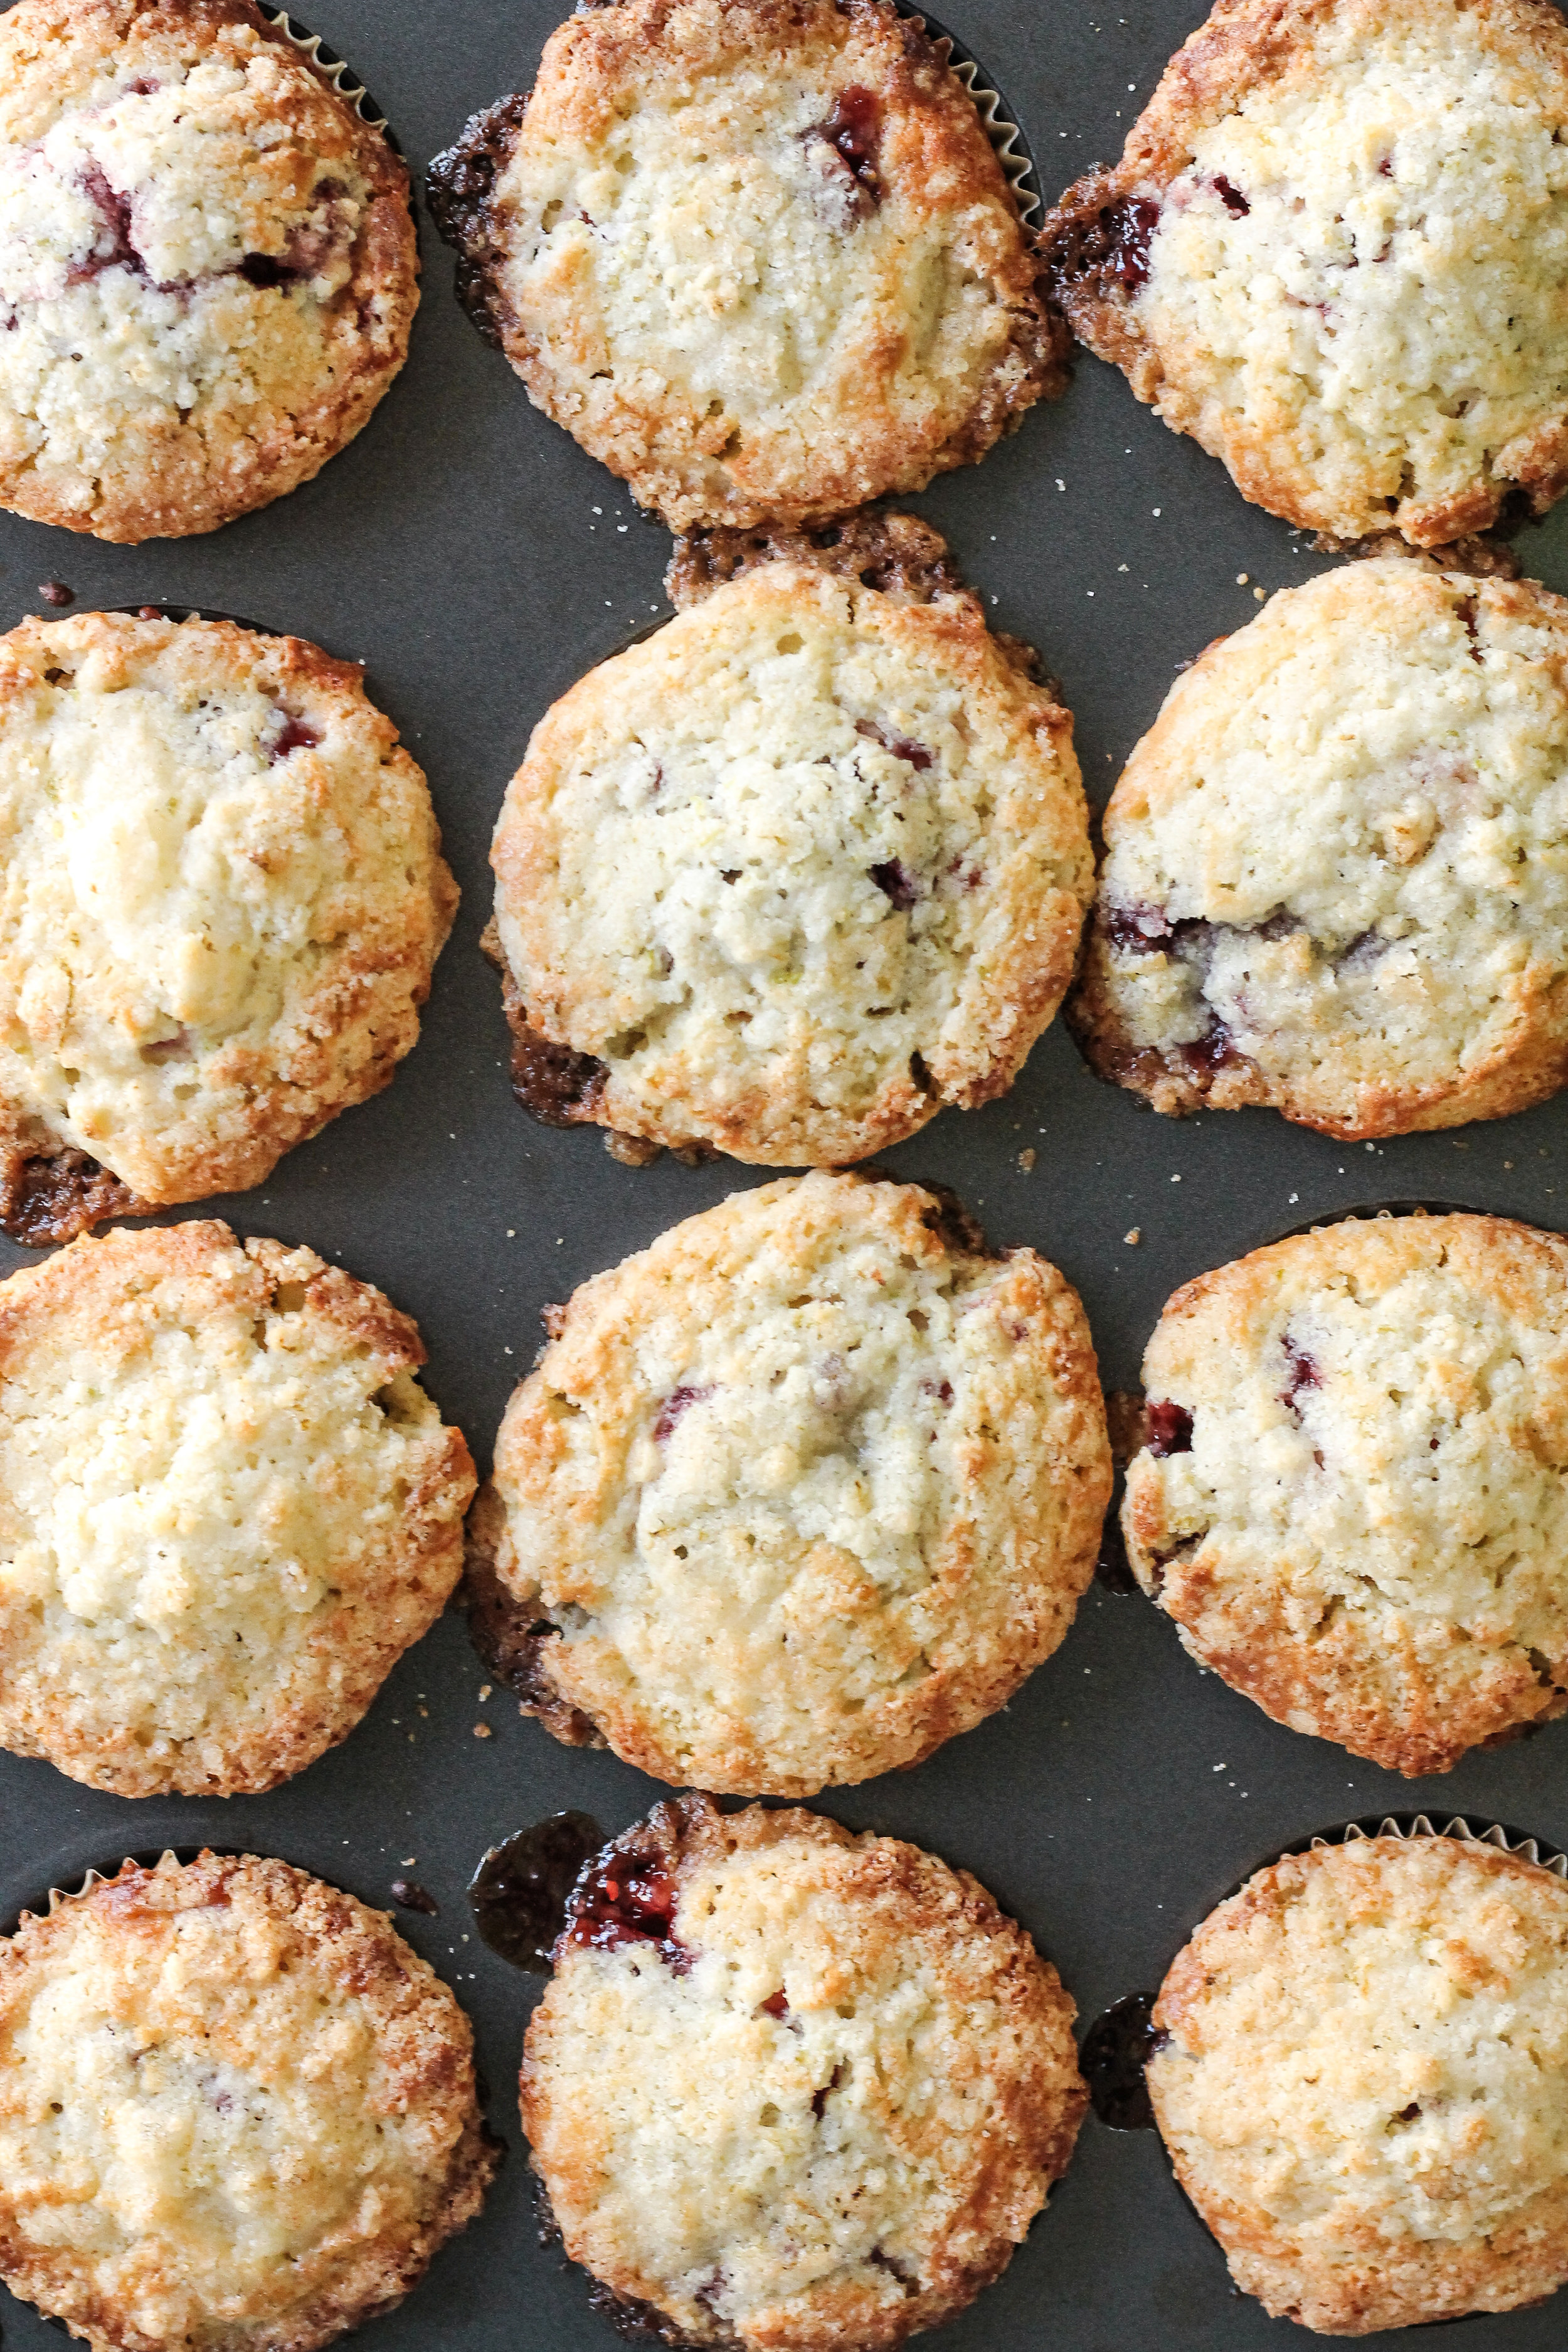 These tender Lime Sugar Streusel Muffins are filled with a tart layer of Raspberry Preserves and covered with a crisp, zesty streusel - a perfect way to start the day!  Find the recipe on www.pedanticfoodie.com!